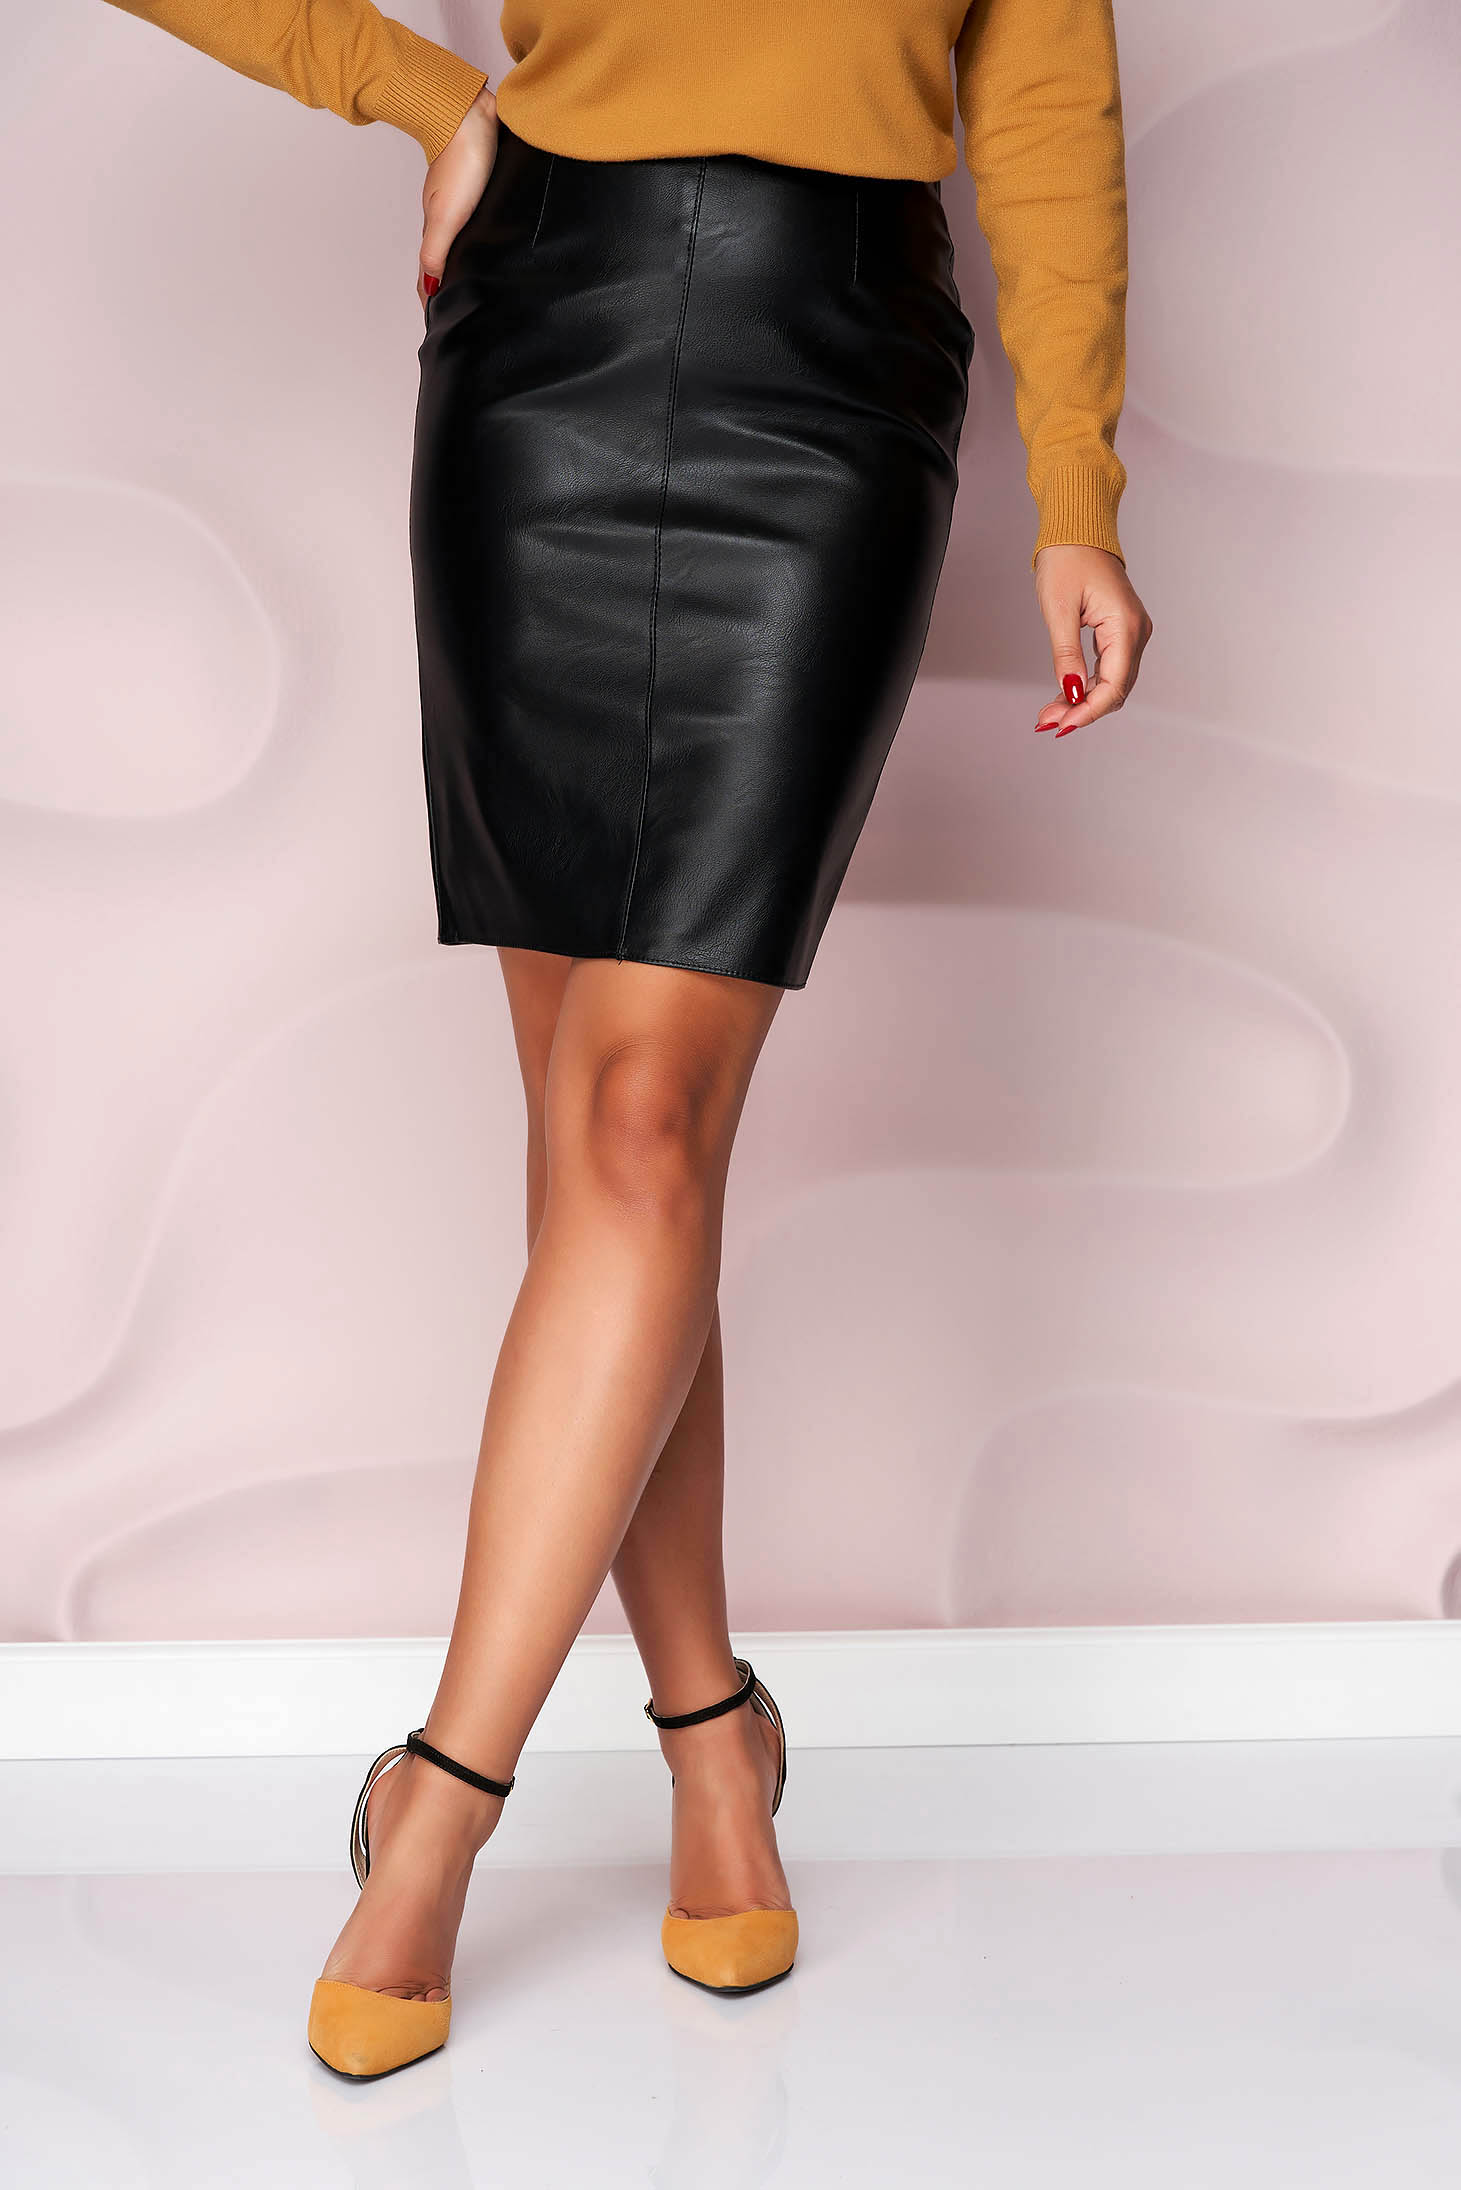 Black skirt short cut pencil from ecological leather office slightly elastic fabric